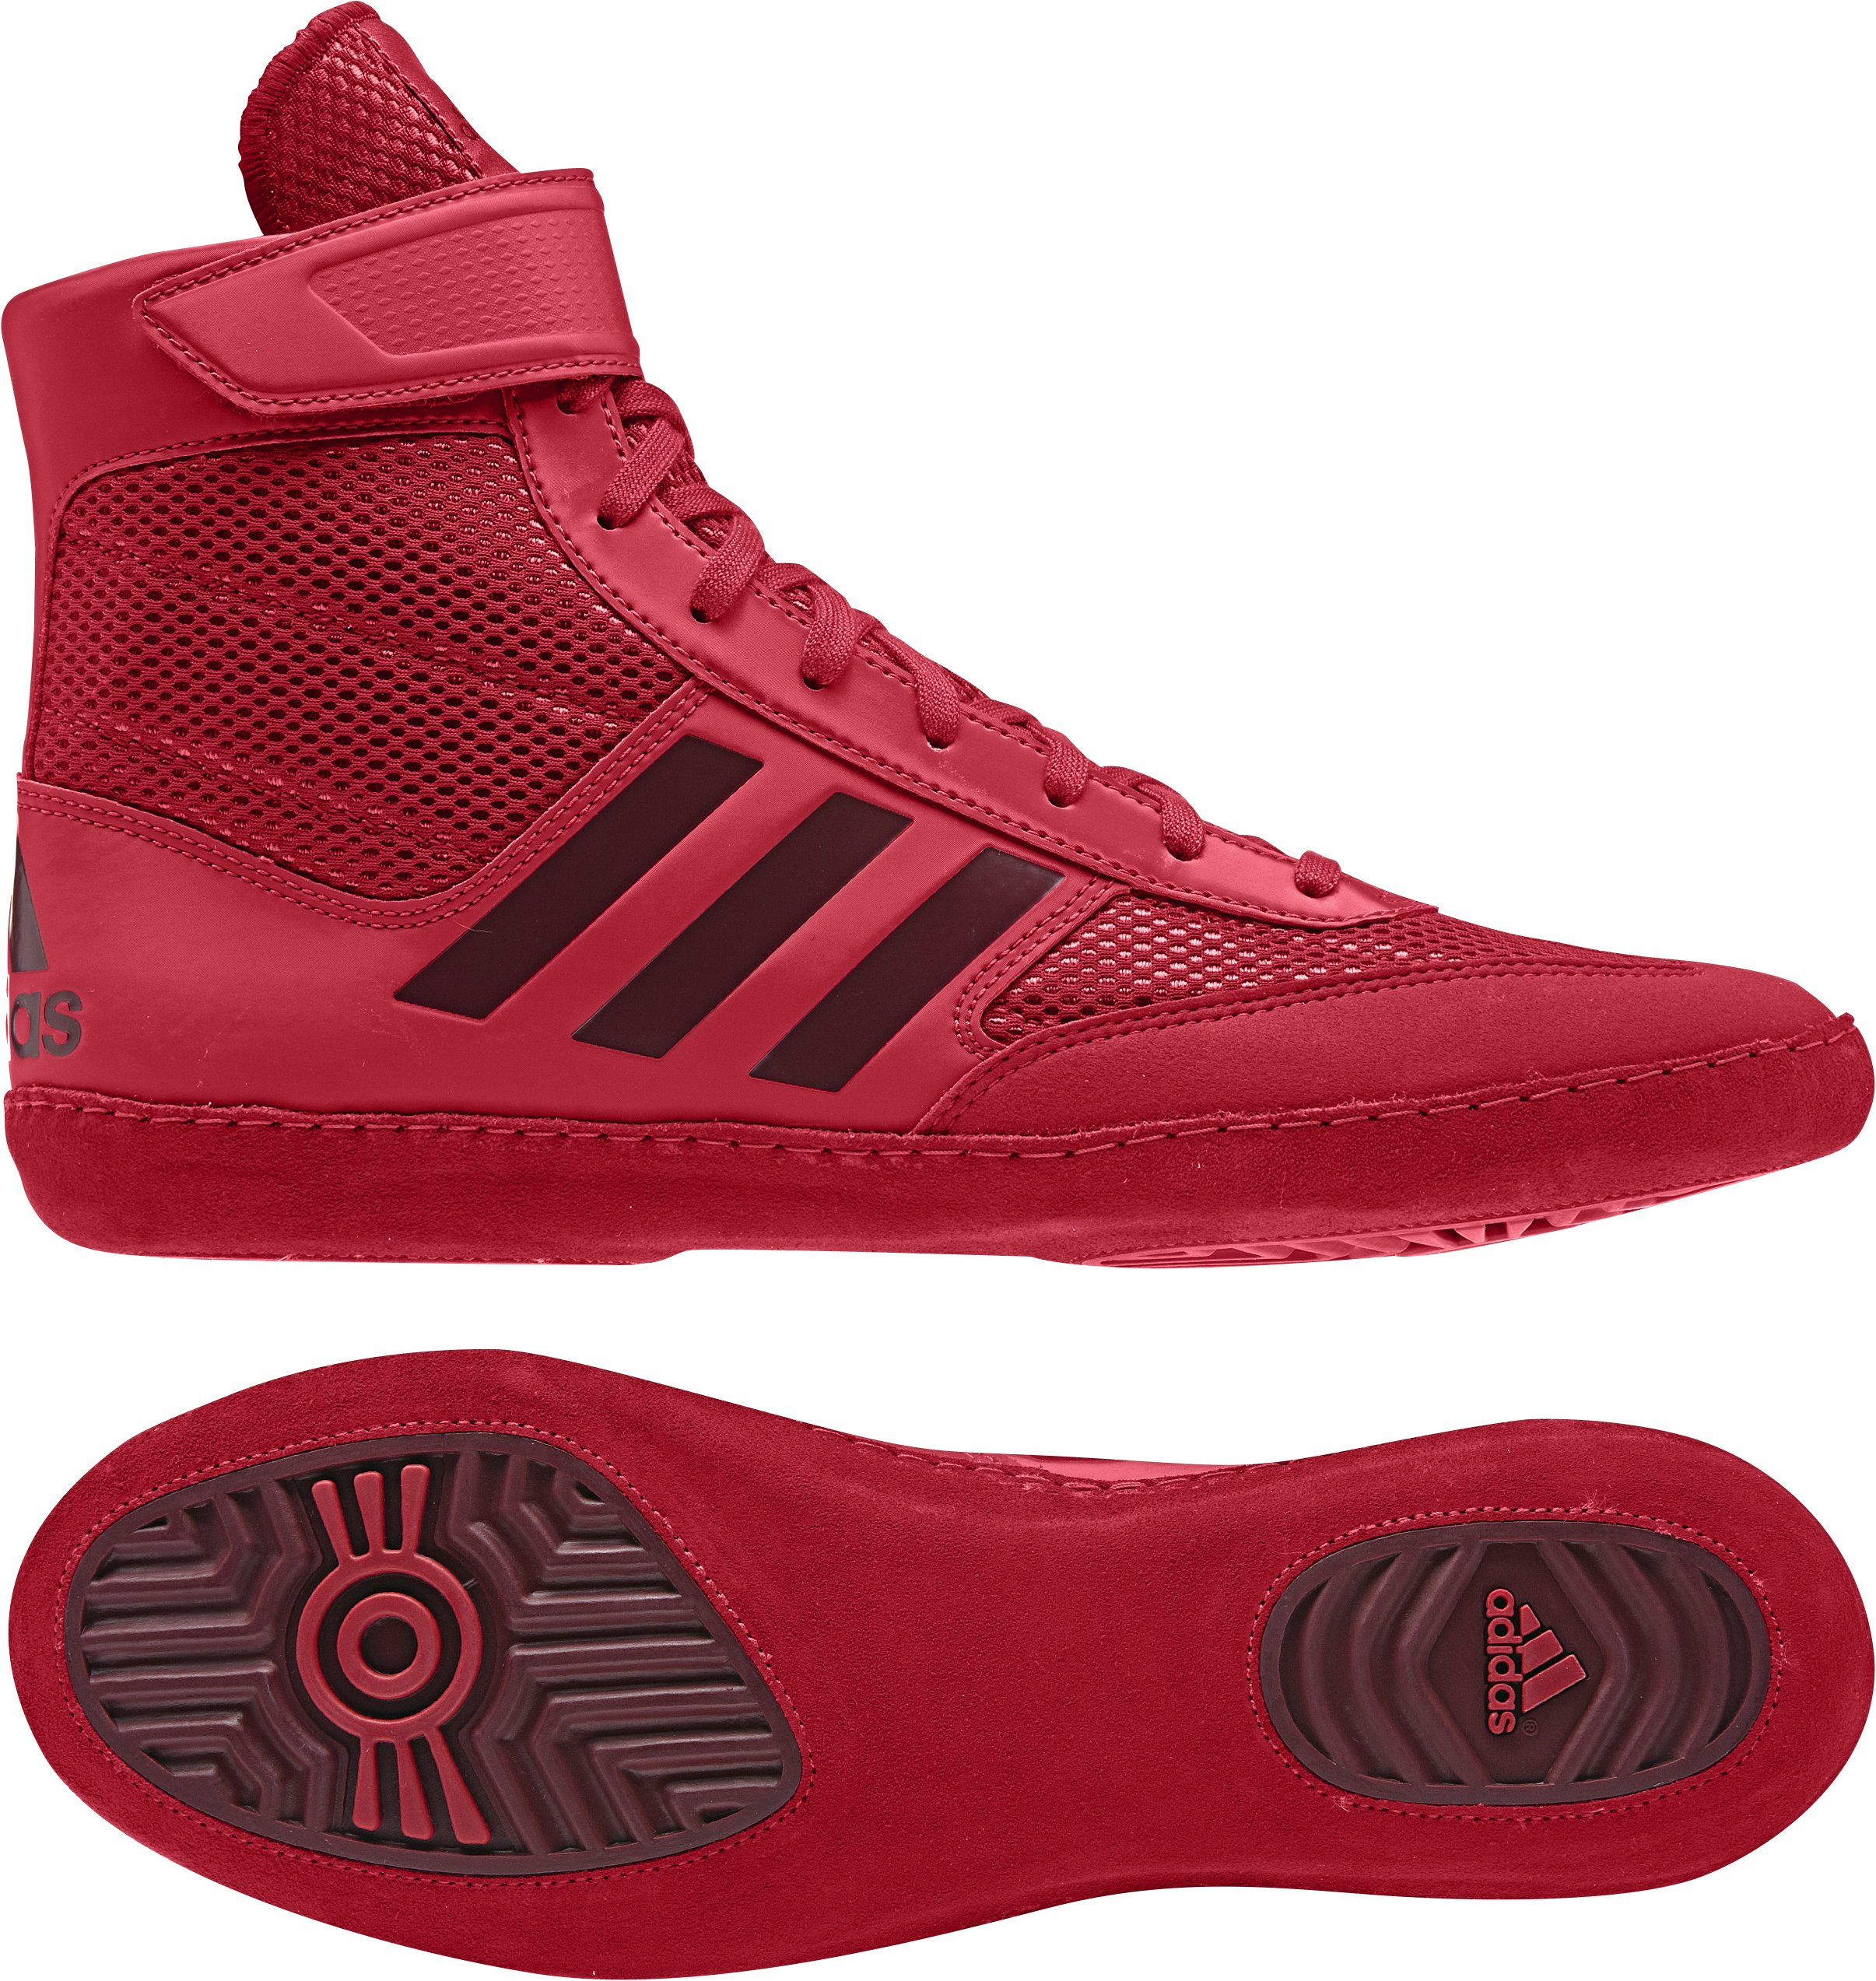 90841dcacddc9f Galleon - Adidas Combat Speed 5 Men s Wrestling Shoes